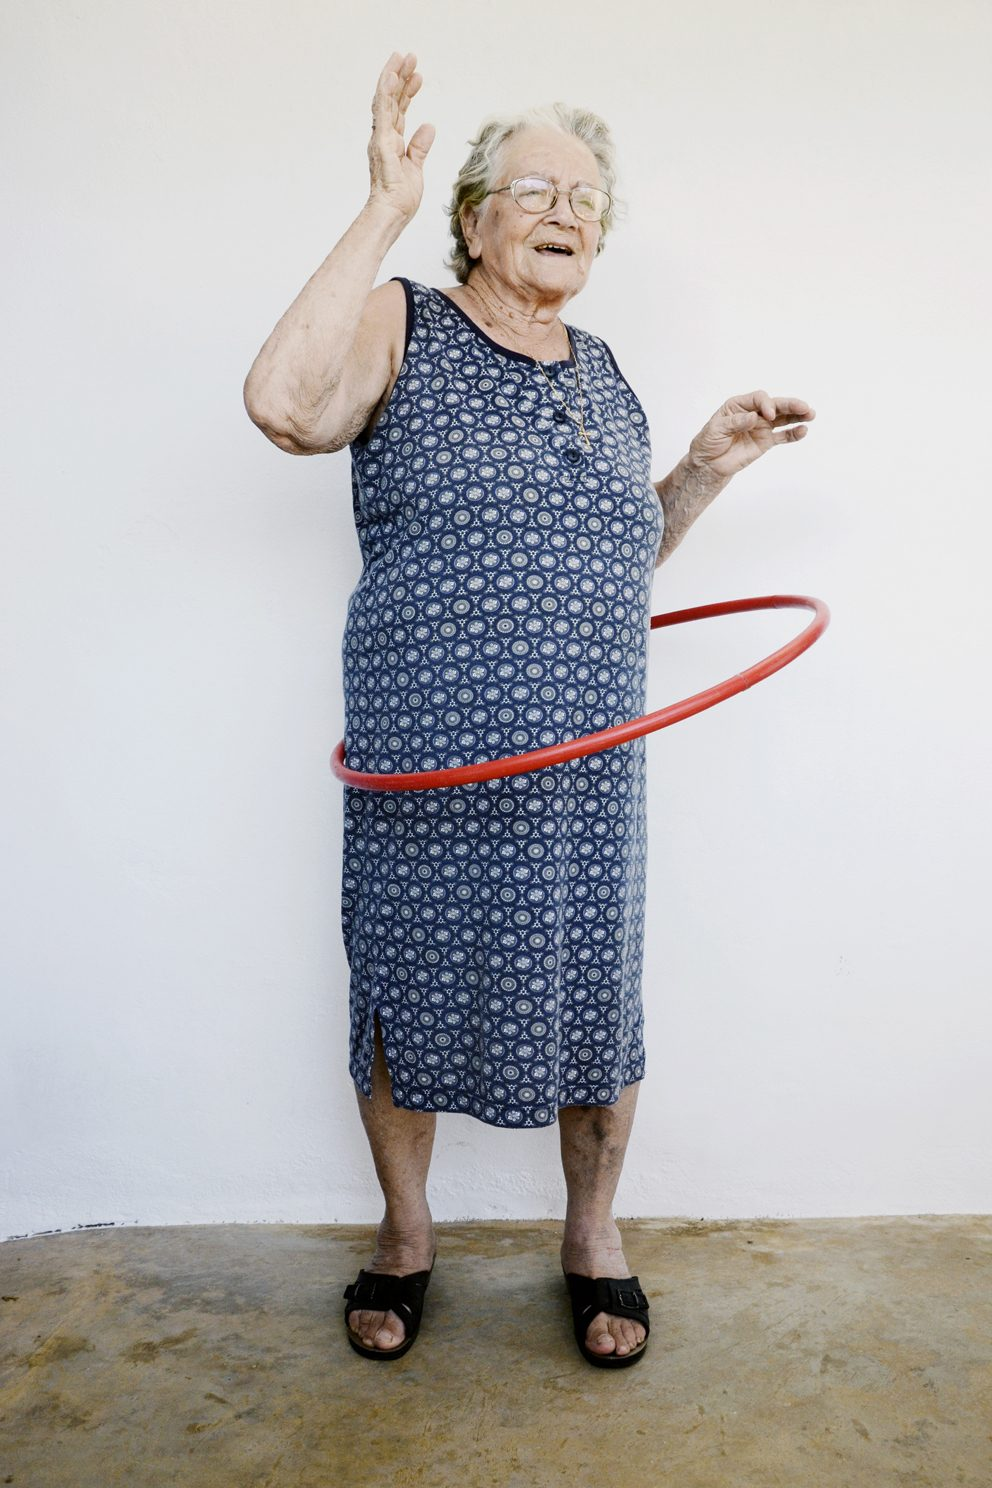 © Alexis Vasilikos, Untitled (Grandmother), 2013 / Courtesy of CAN Christina Androulidaki gallery